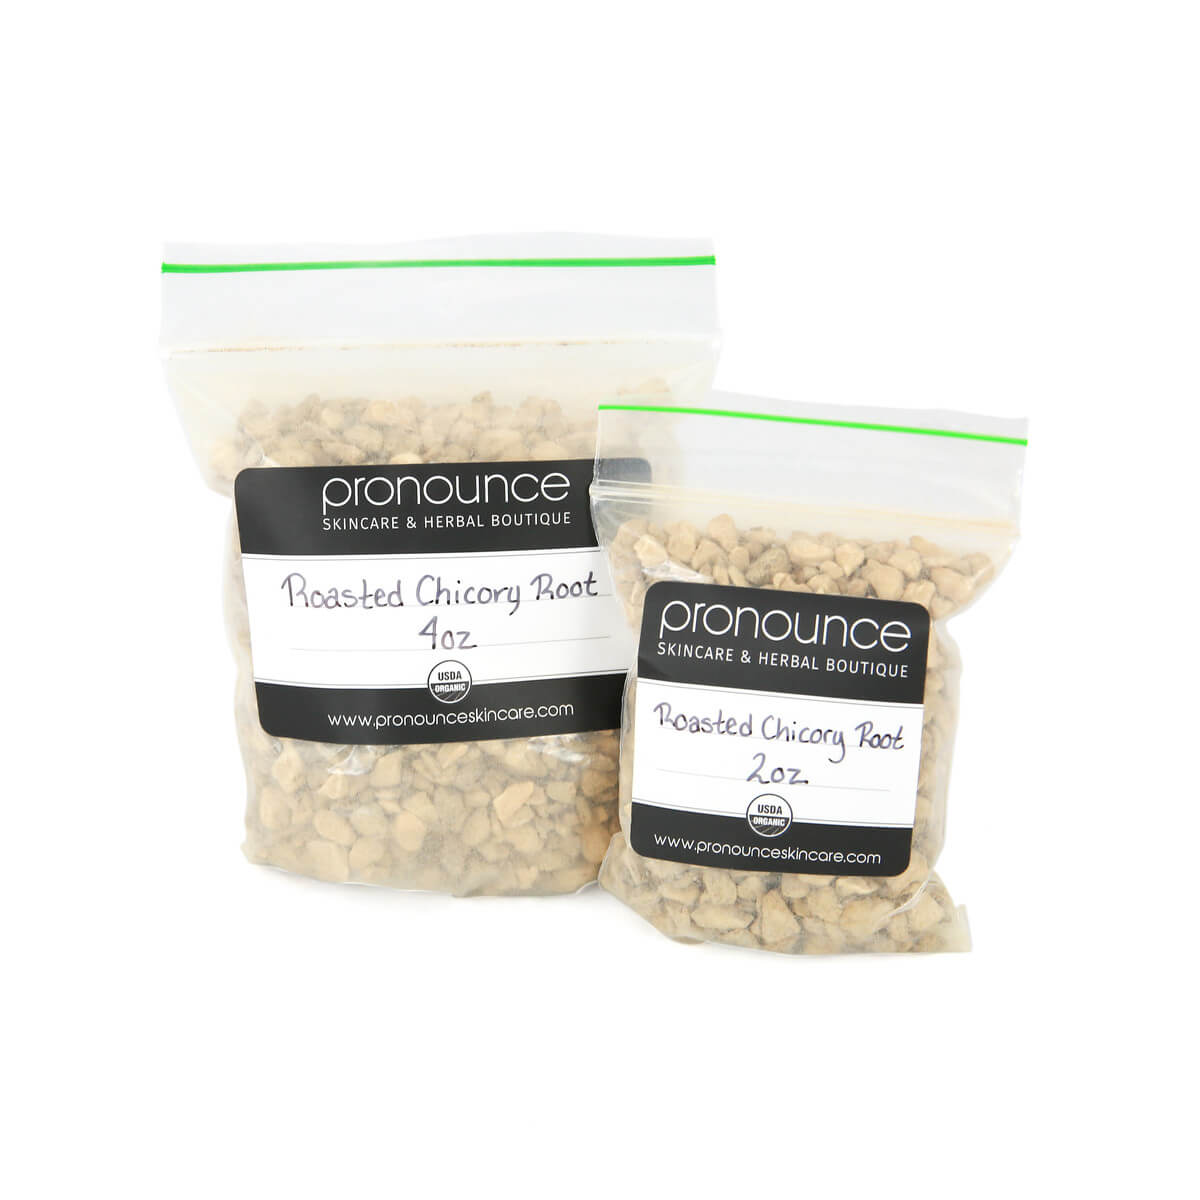 Certified Organic Roasted Chicory Root 2 Sizes Pronounce Skincare & Herbal Boutique